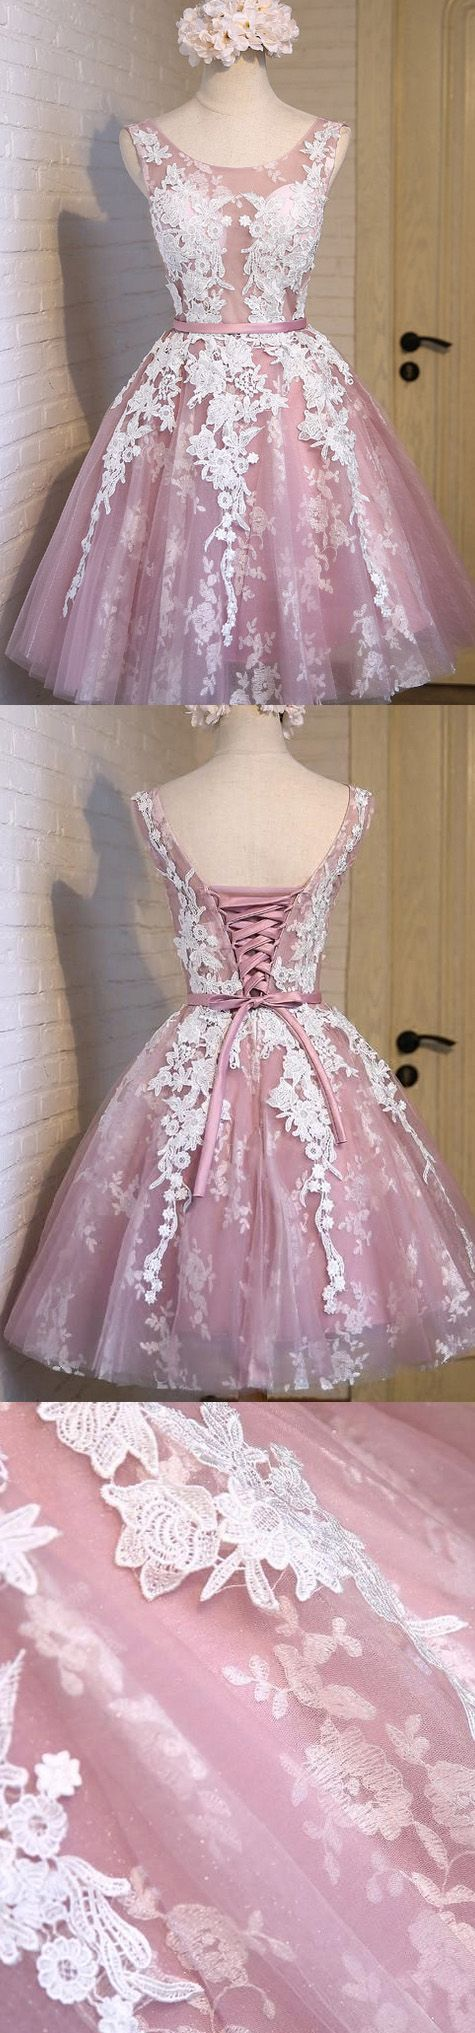 best prom dresses images on pinterest prom dresses with